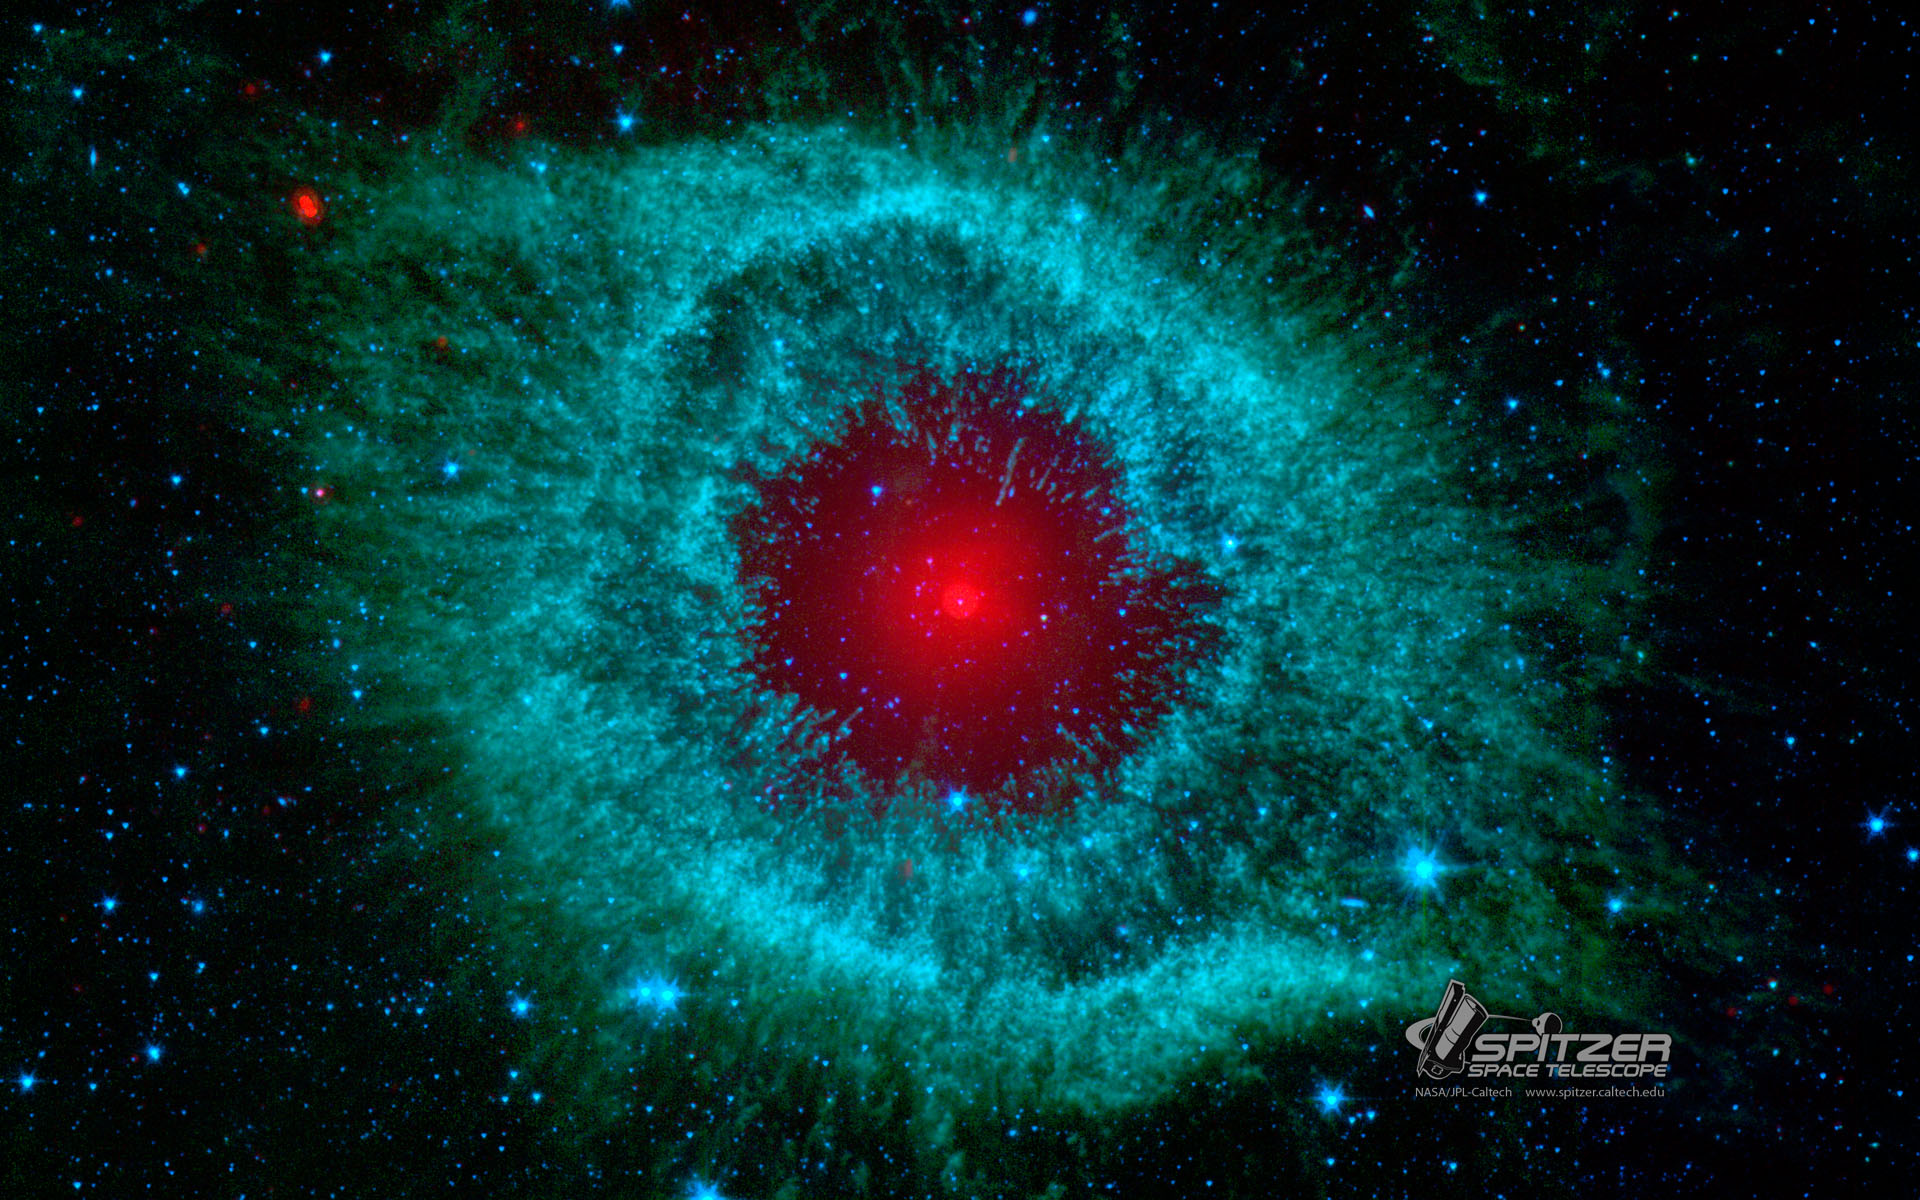 Wallpapers   NASA Spitzer Space Telescope